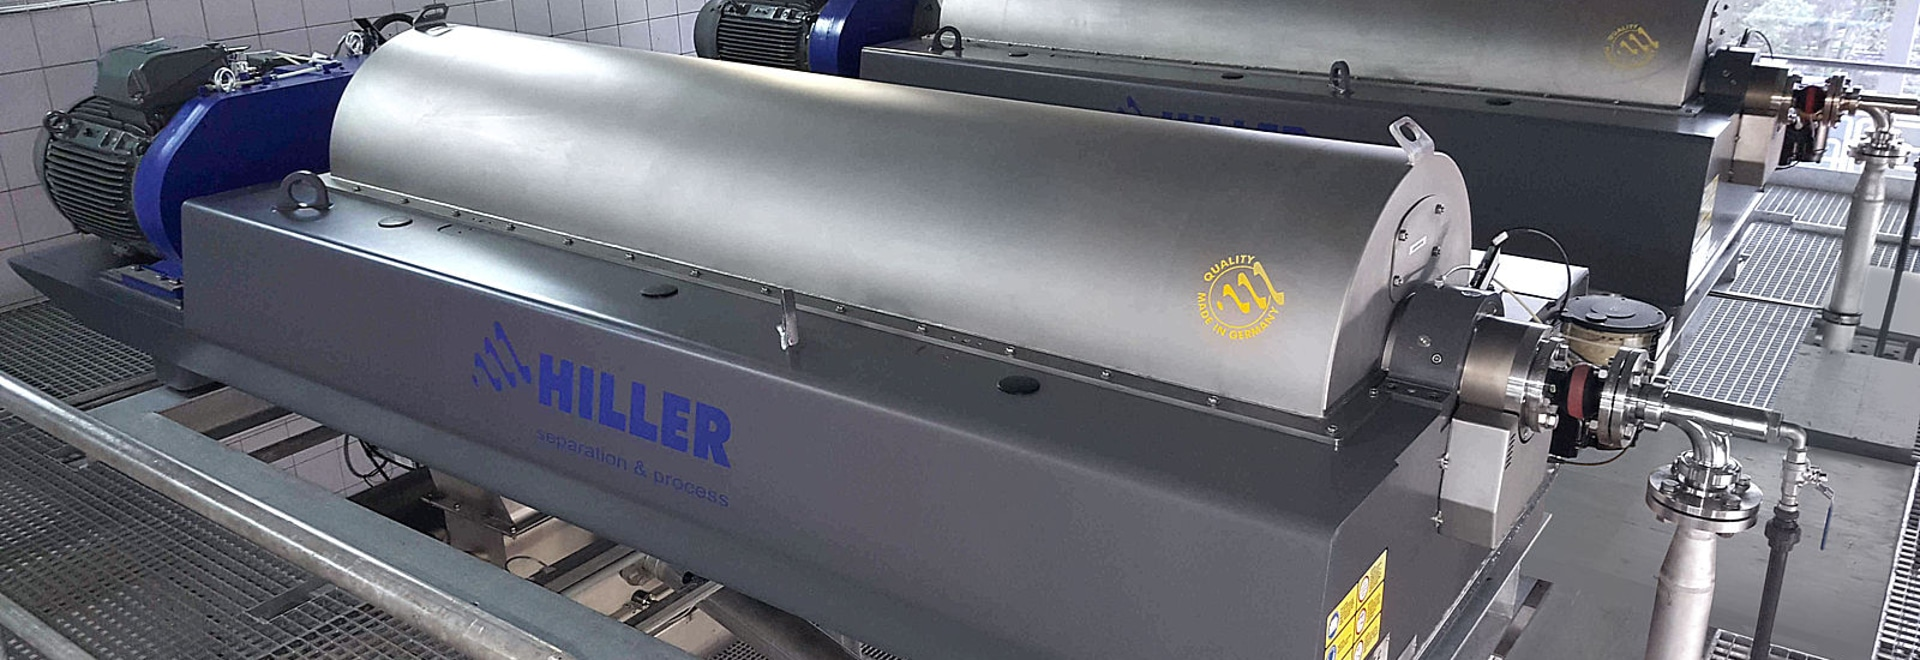 Hiller Decanter Centrifuge for Optimal Dewatering Results at Waste Water Treatment Plant in Switzerland